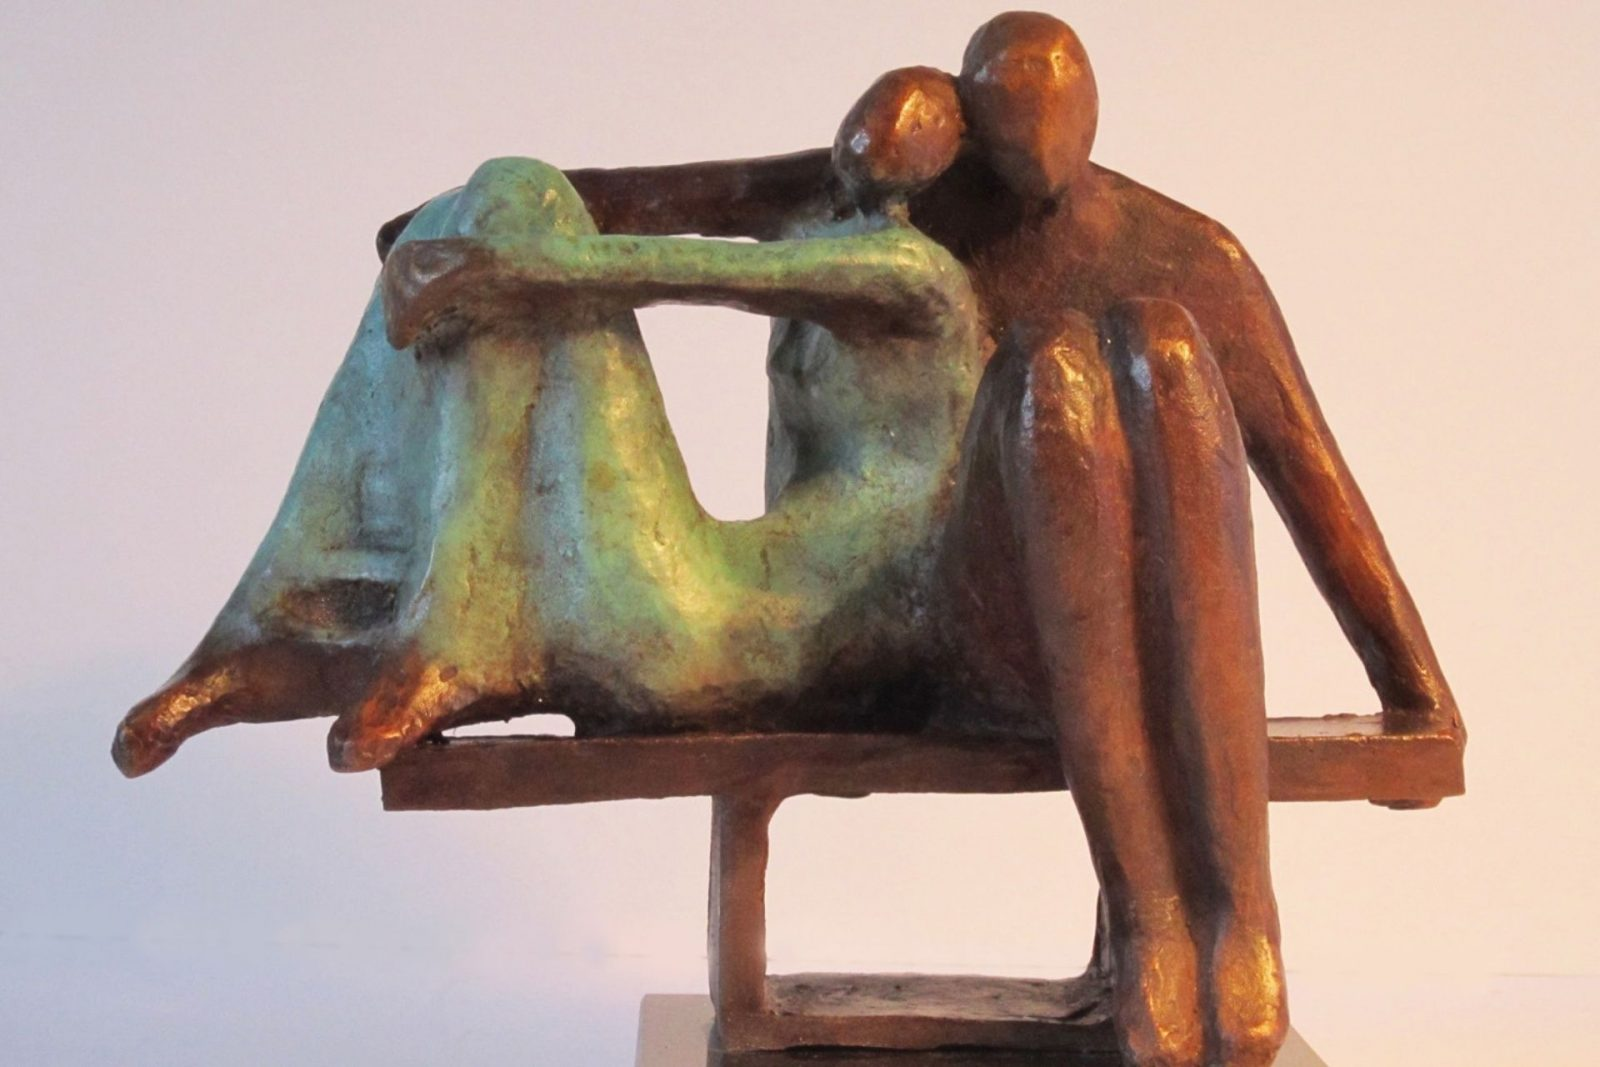 large scale sculpture by Bozena Happach